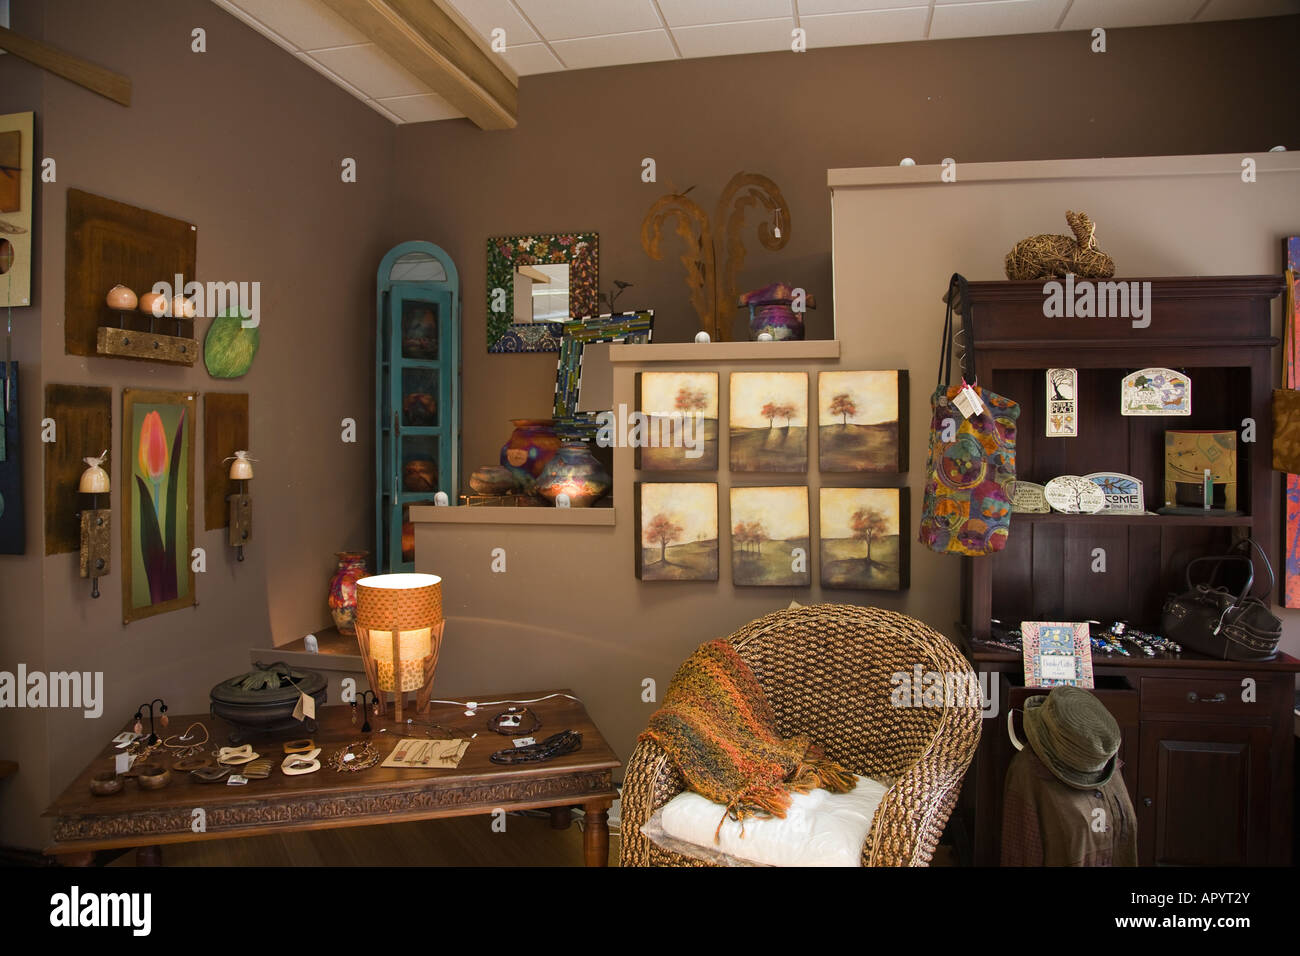 IOWA LeClaire Interior Of Home Furnishings Gift Shop Downtown Retail Store  Chair And Wall Hangings